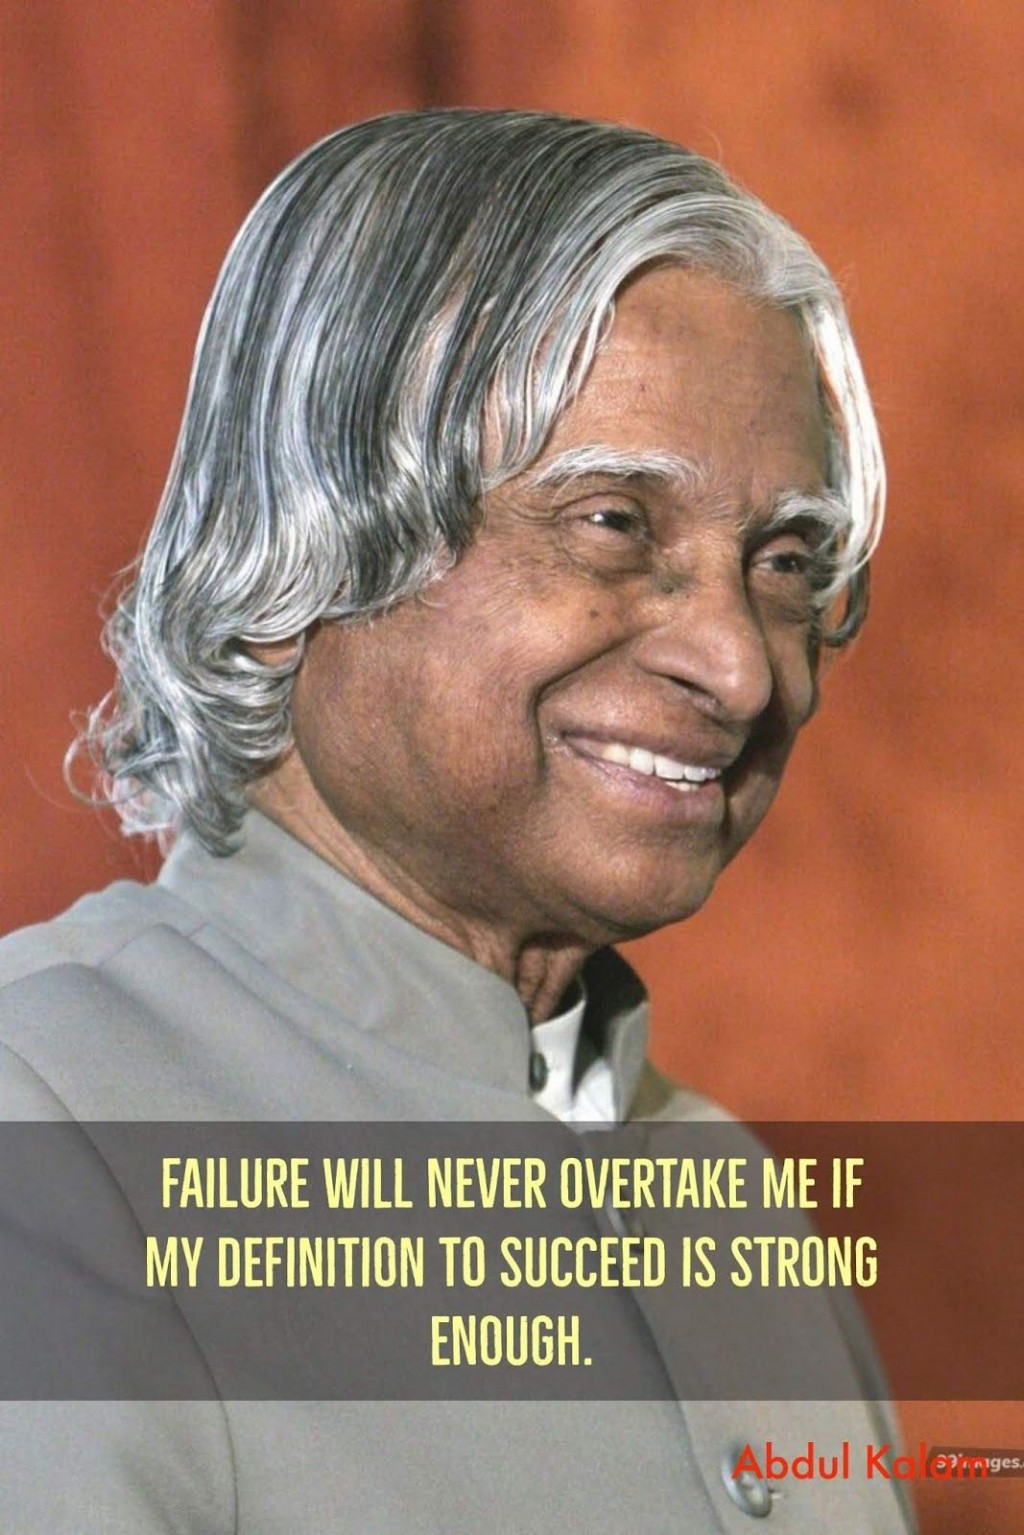 020 Essay Example Abdul Kalam My Inspiration Exceptional In English 400 Words Hindi Large